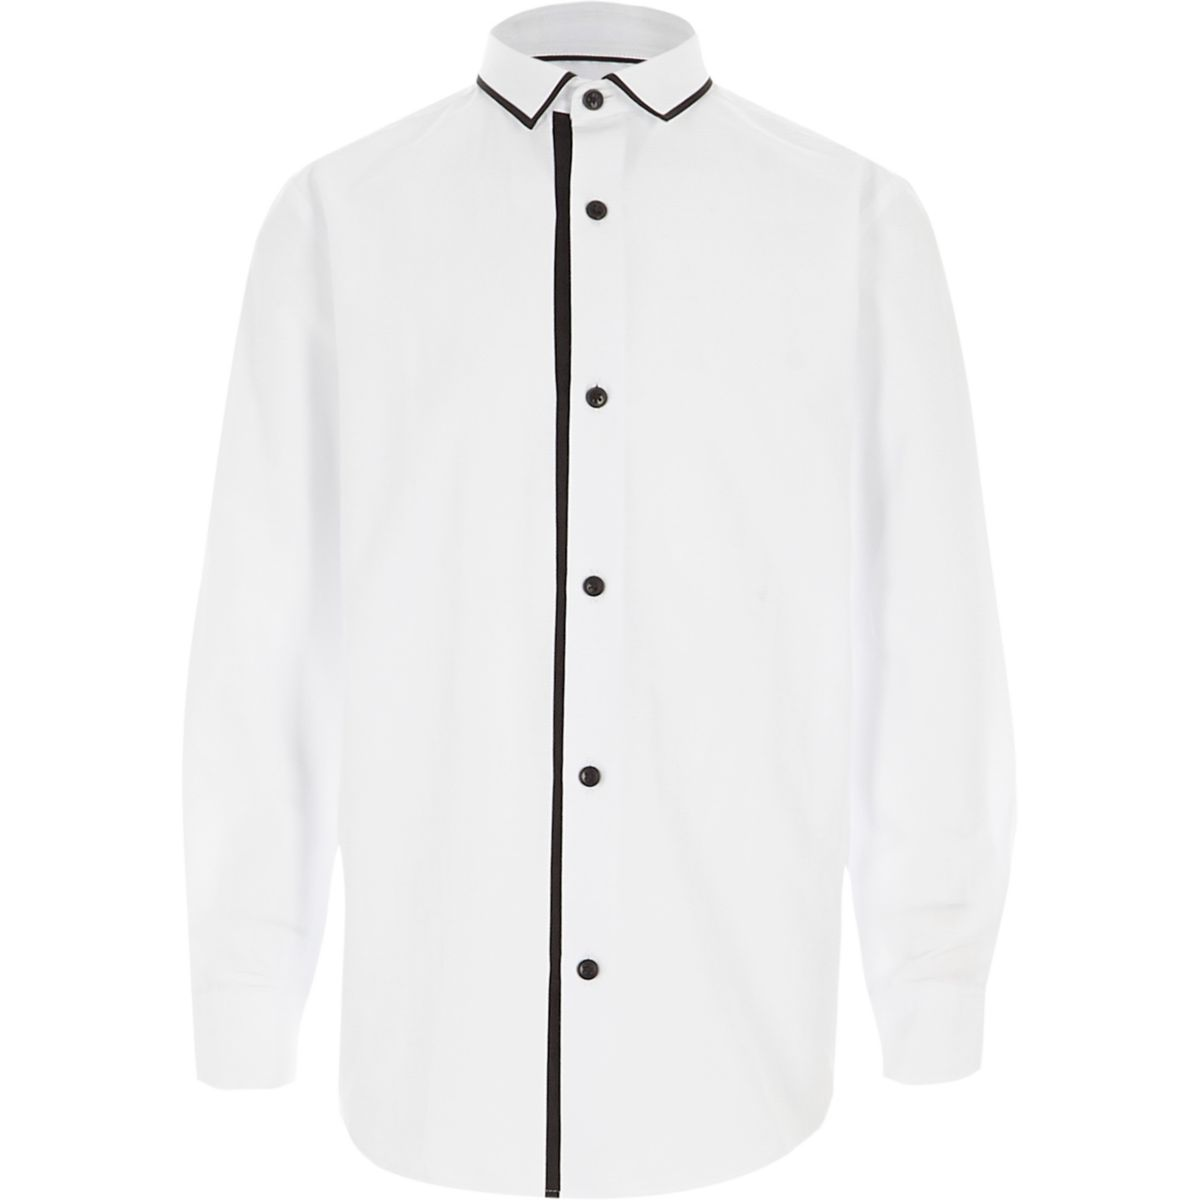 Boys white tipped collar long sleeve shirt